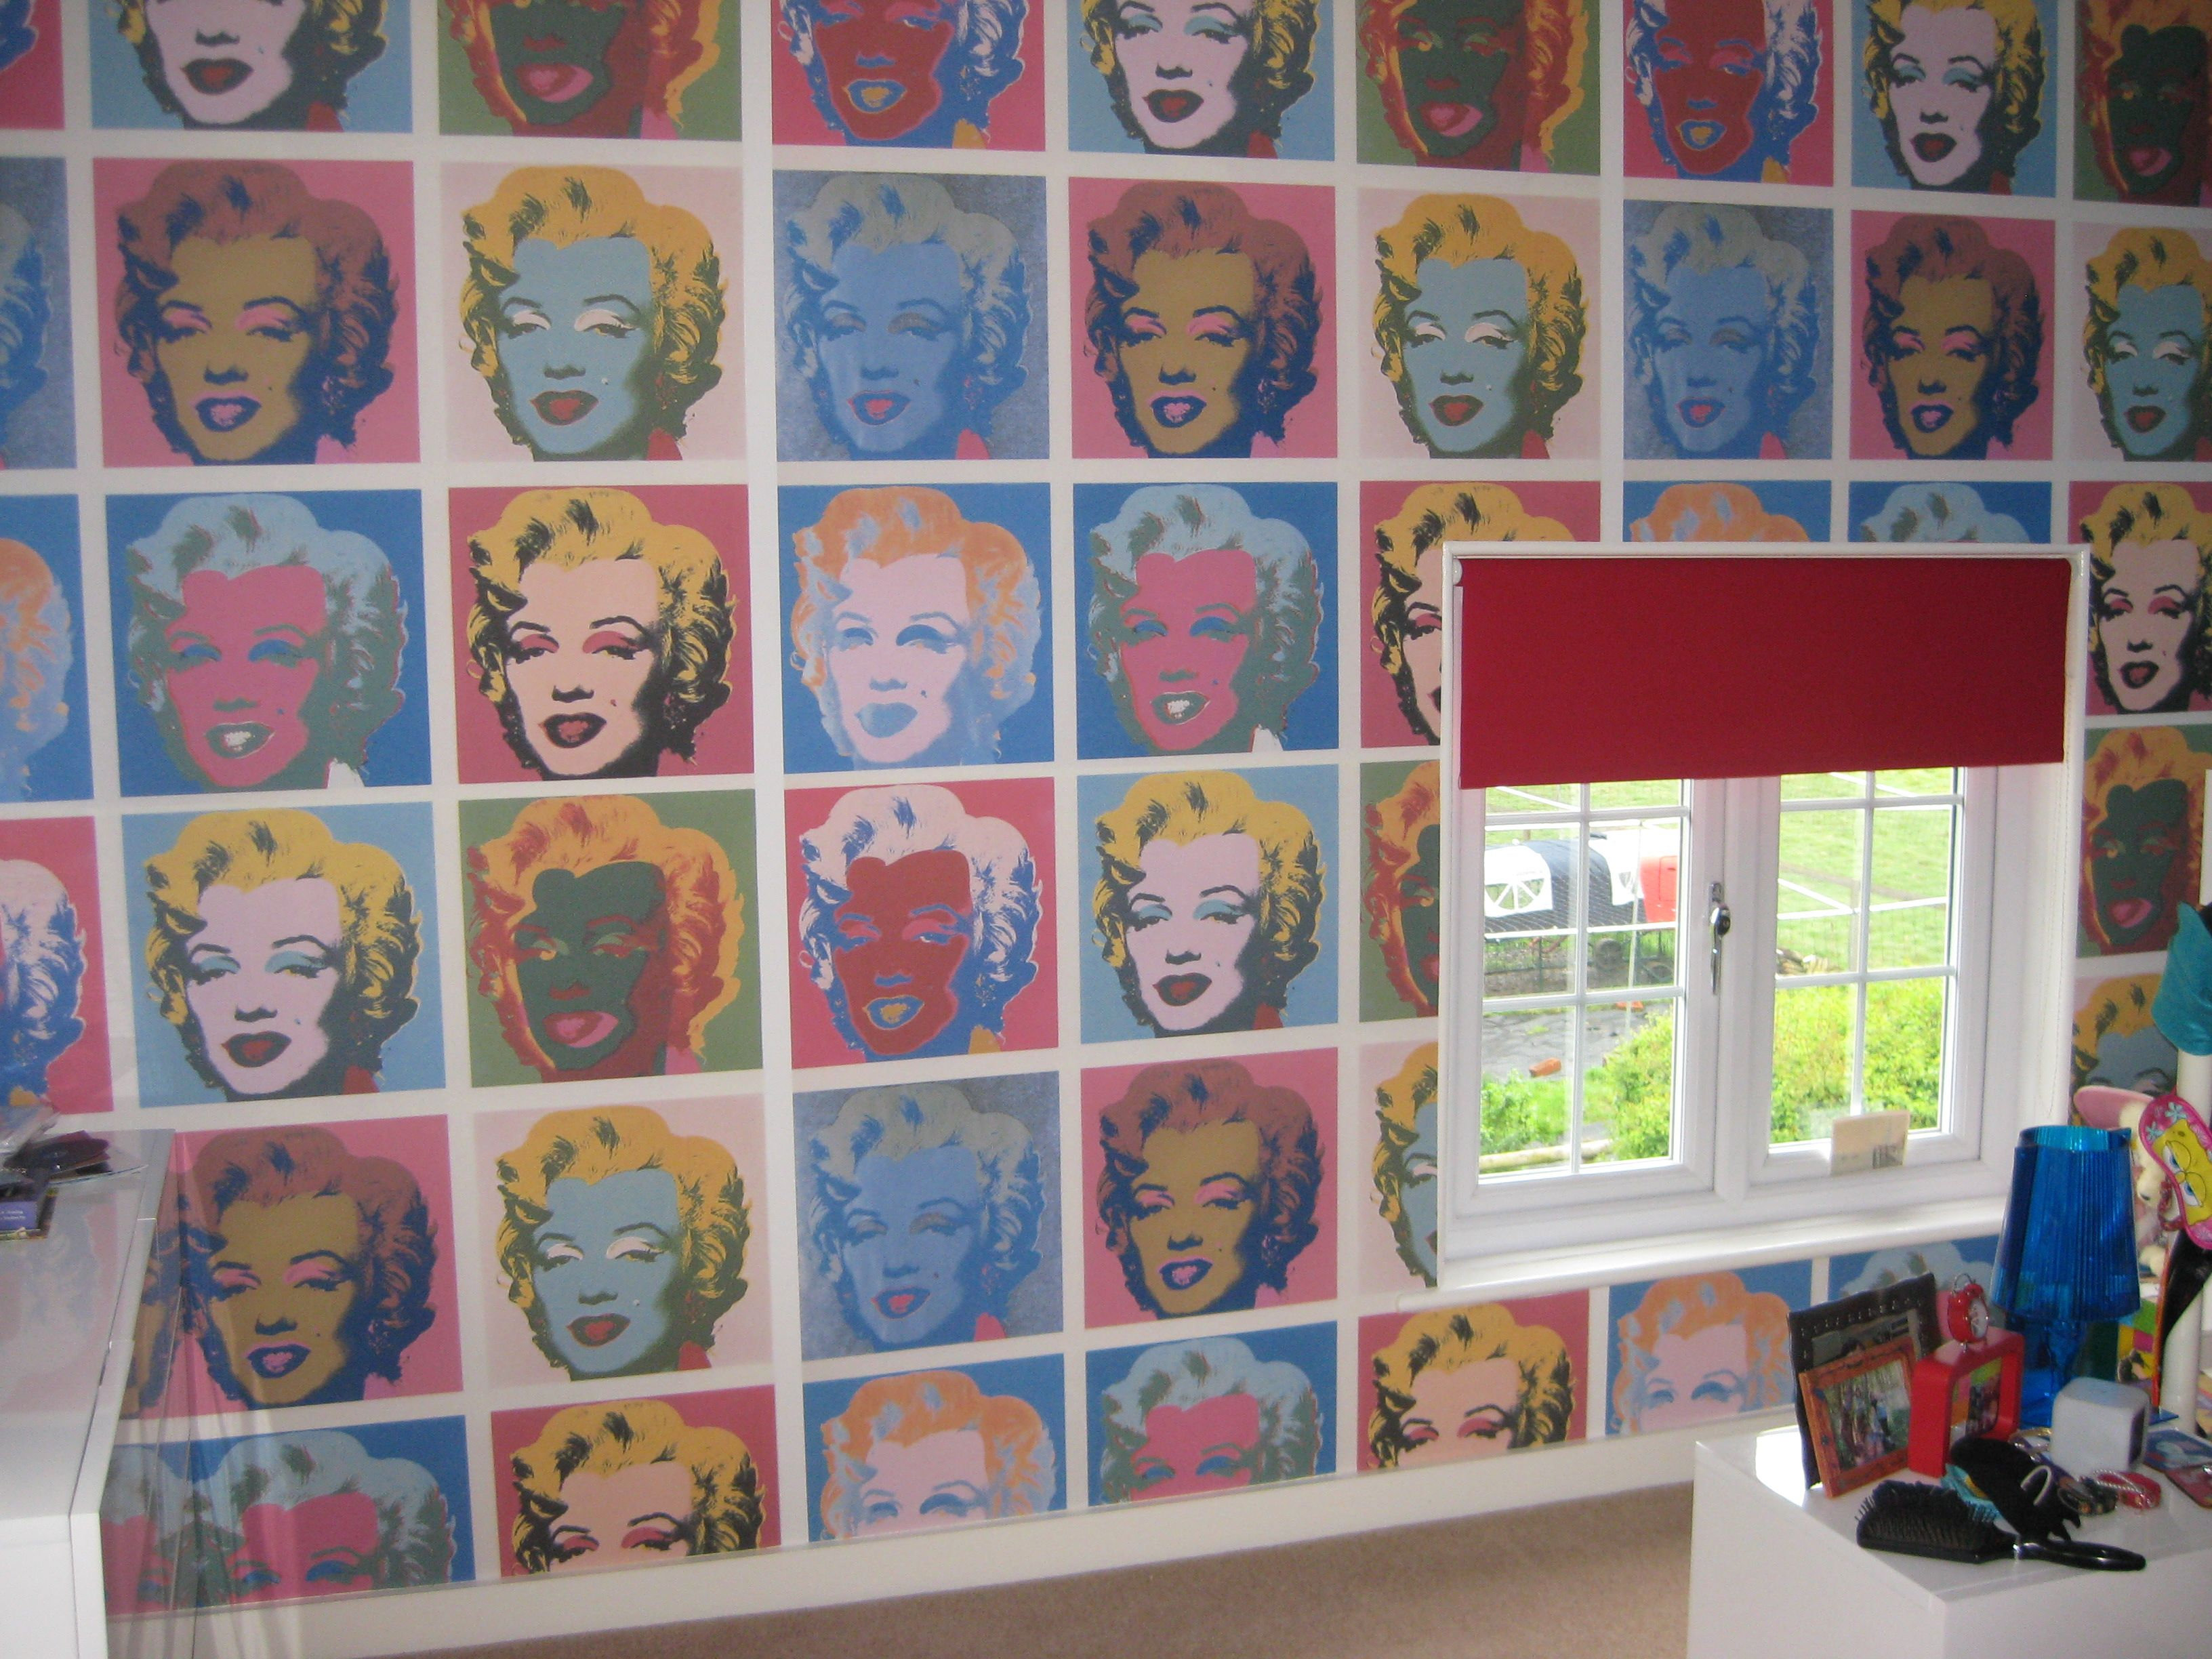 We are loving this Andy Warhol inspired Pop Art wallpaper